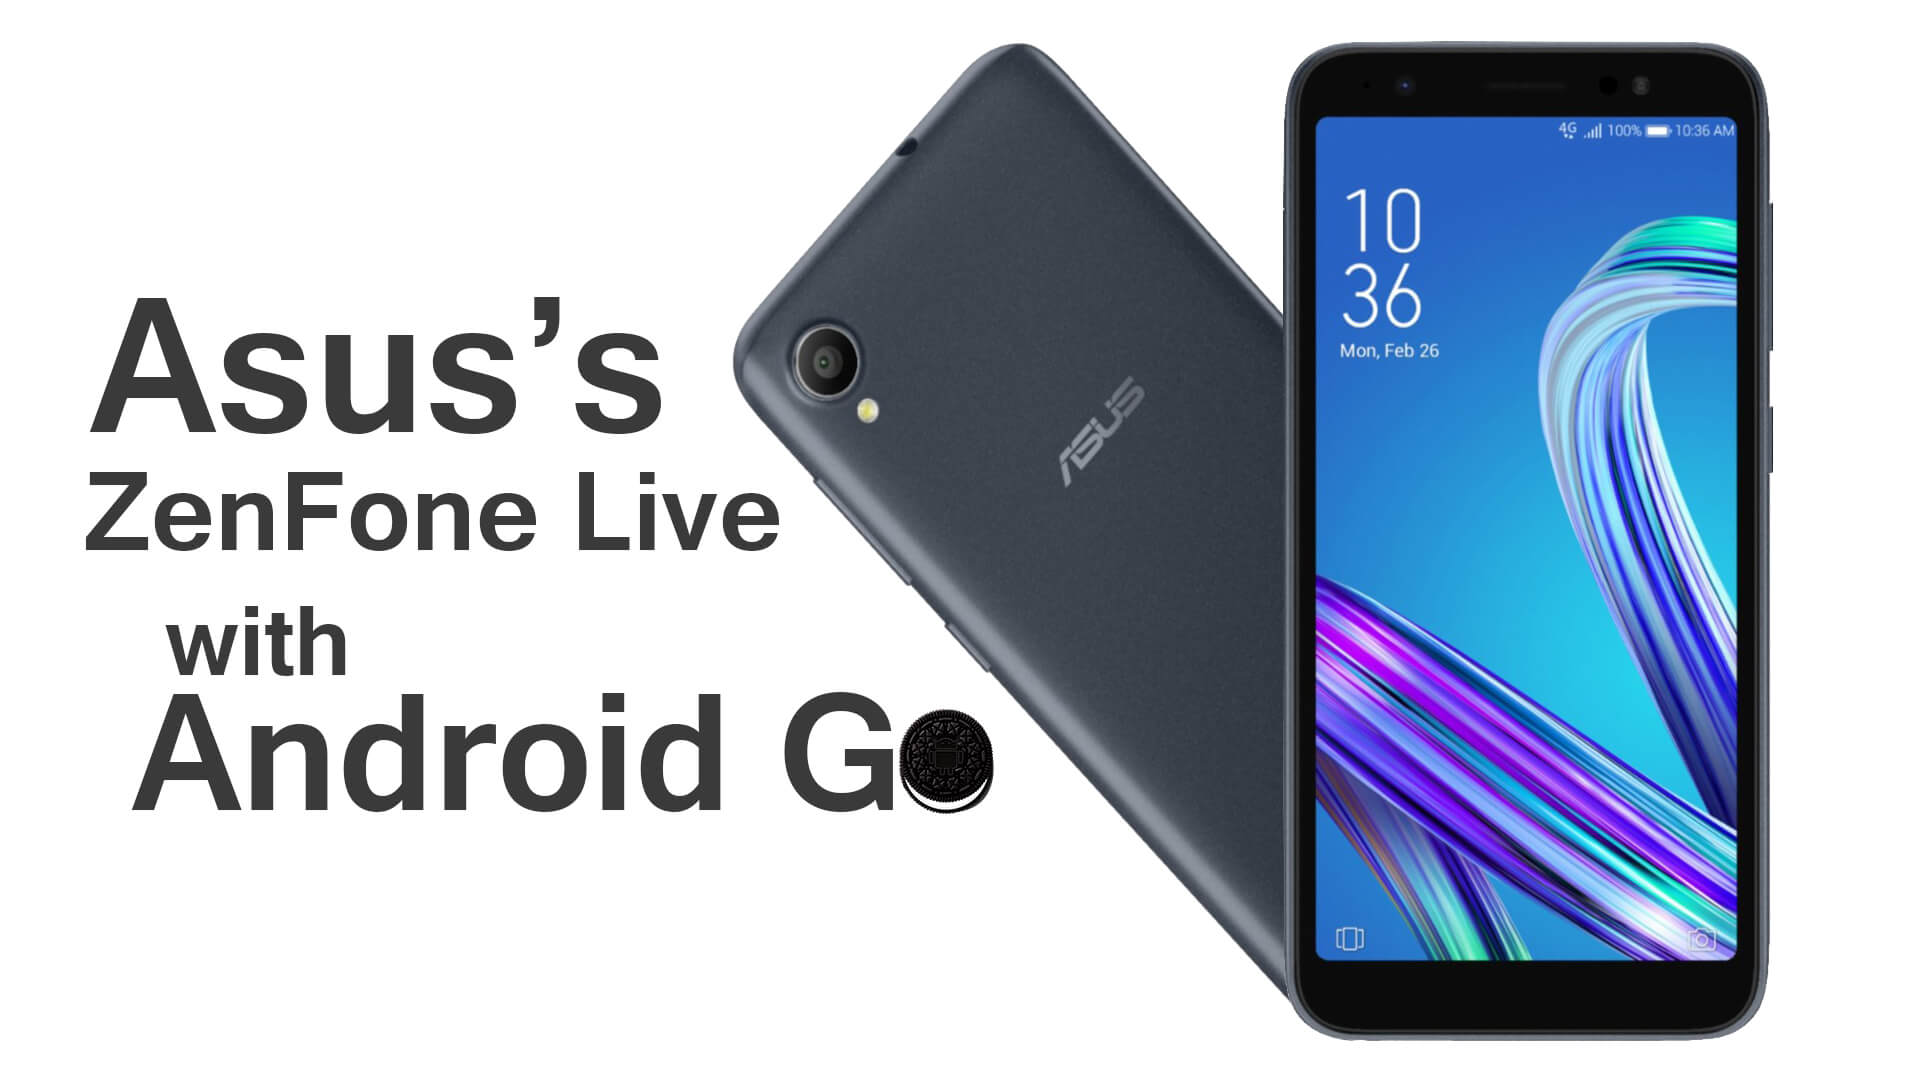 Asus Zenfone Live with Android Go